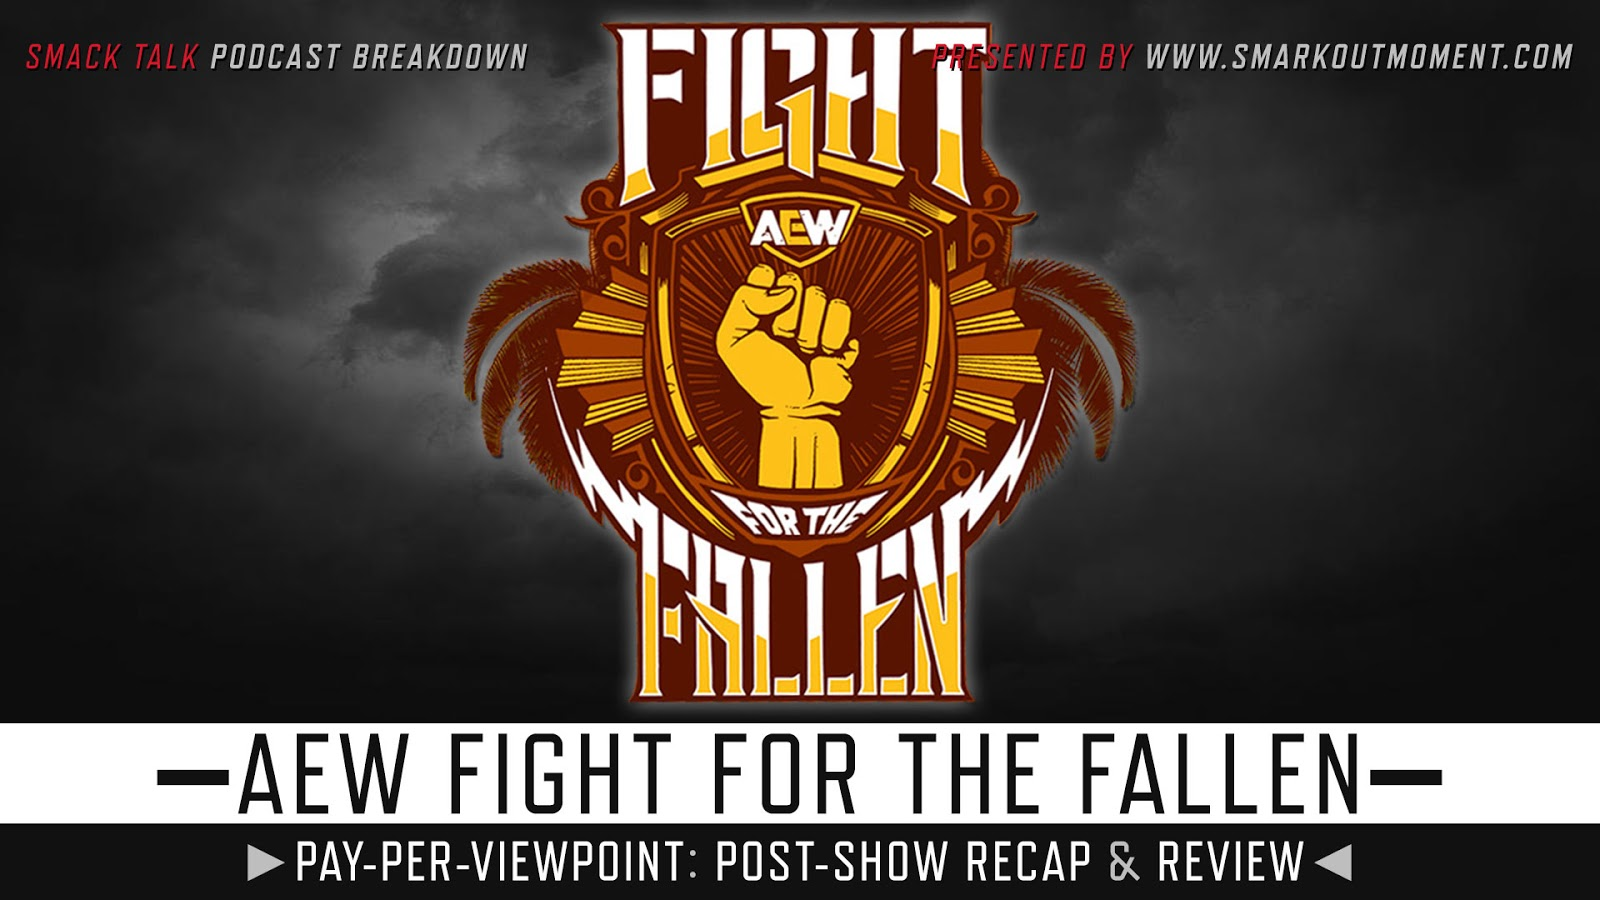 AEW Fight for the Fallen Recap and Review Podcast